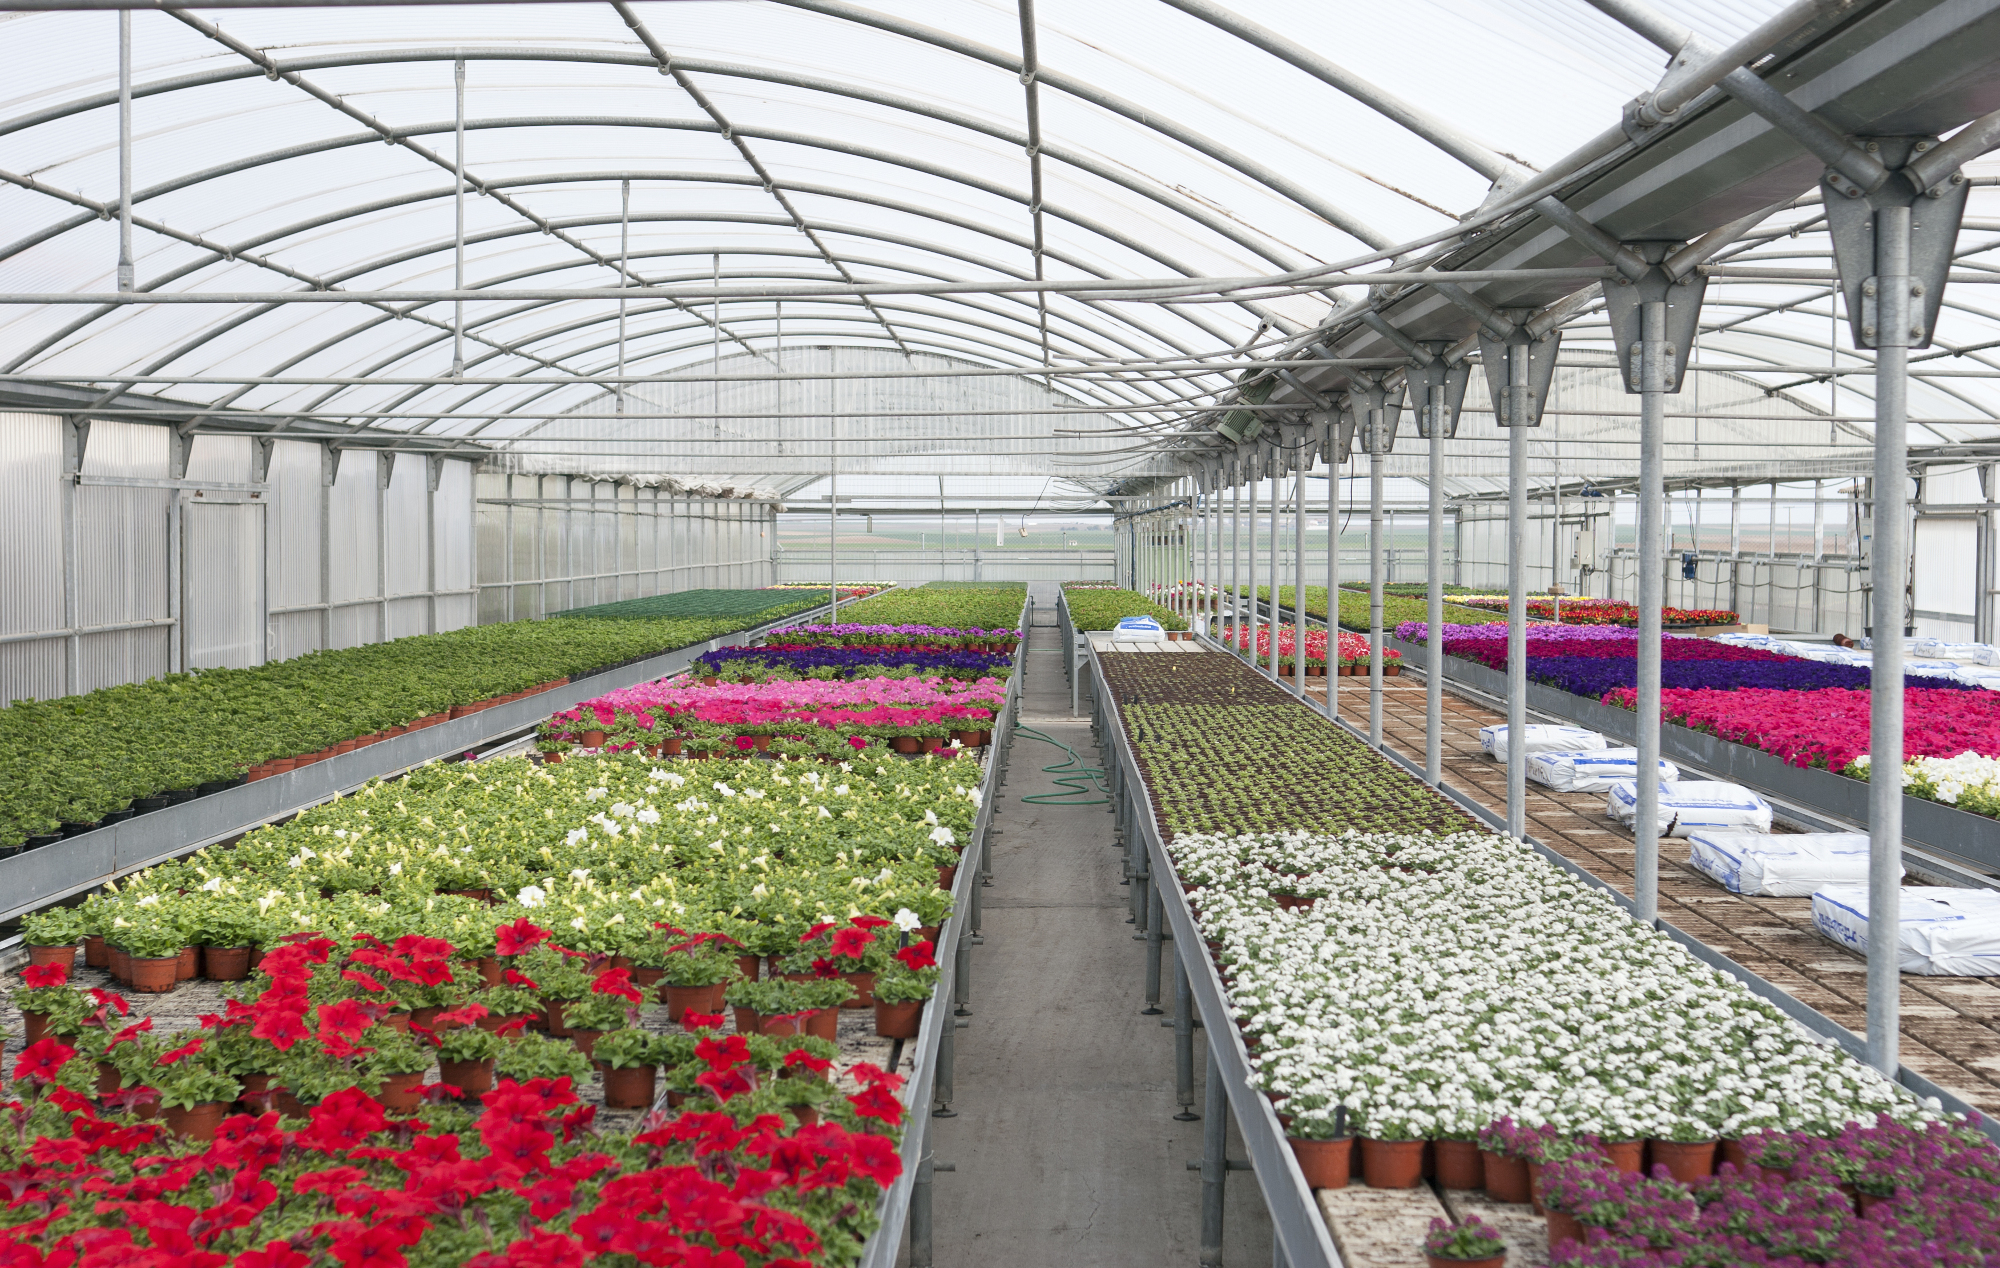 Cogeneration plants in greenhouses. What aspects should be taken into account?